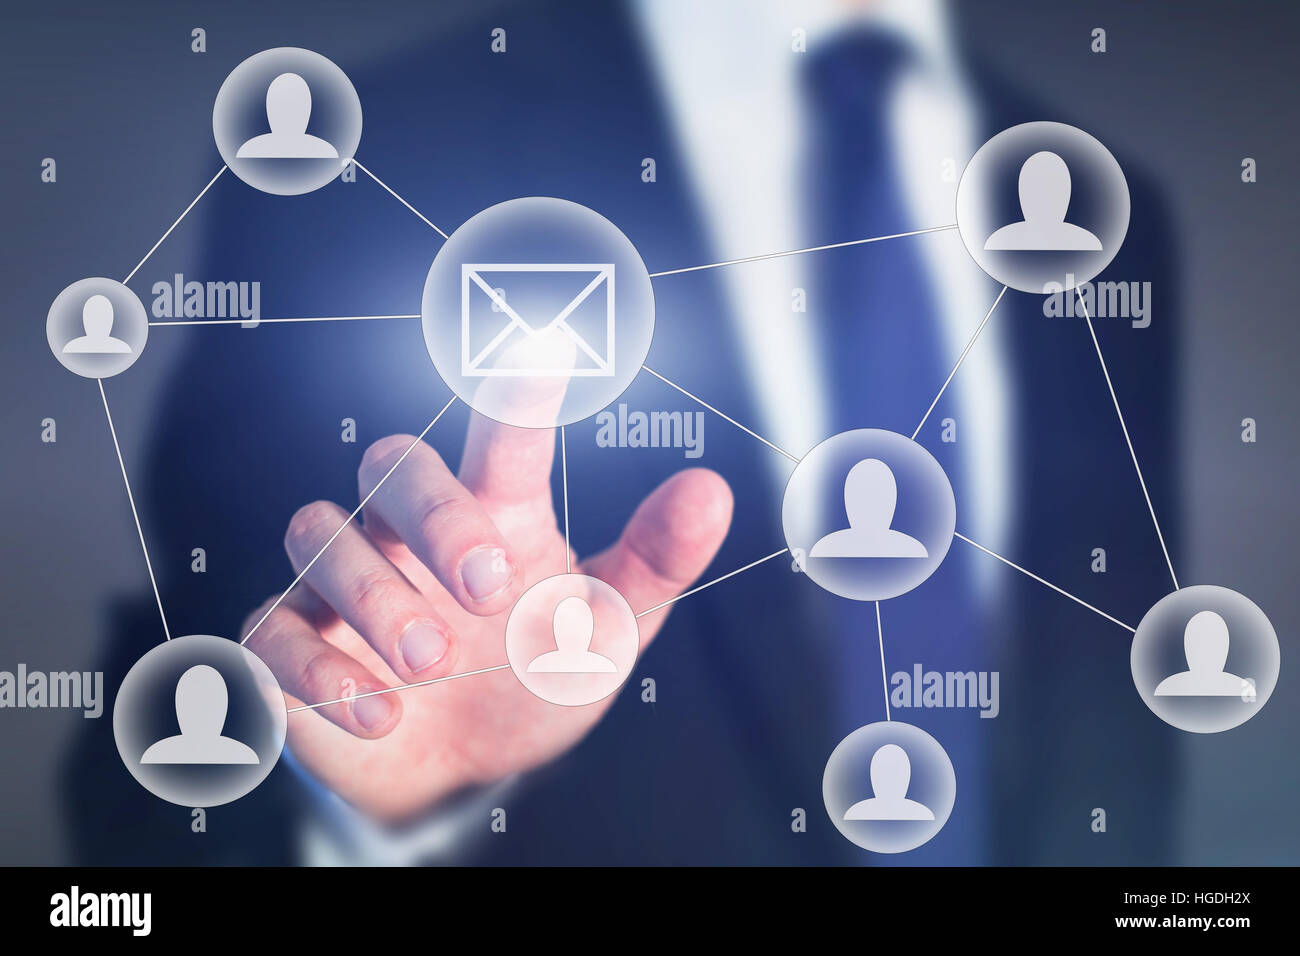 email marketing or business communication concept on touch screen - Stock Image